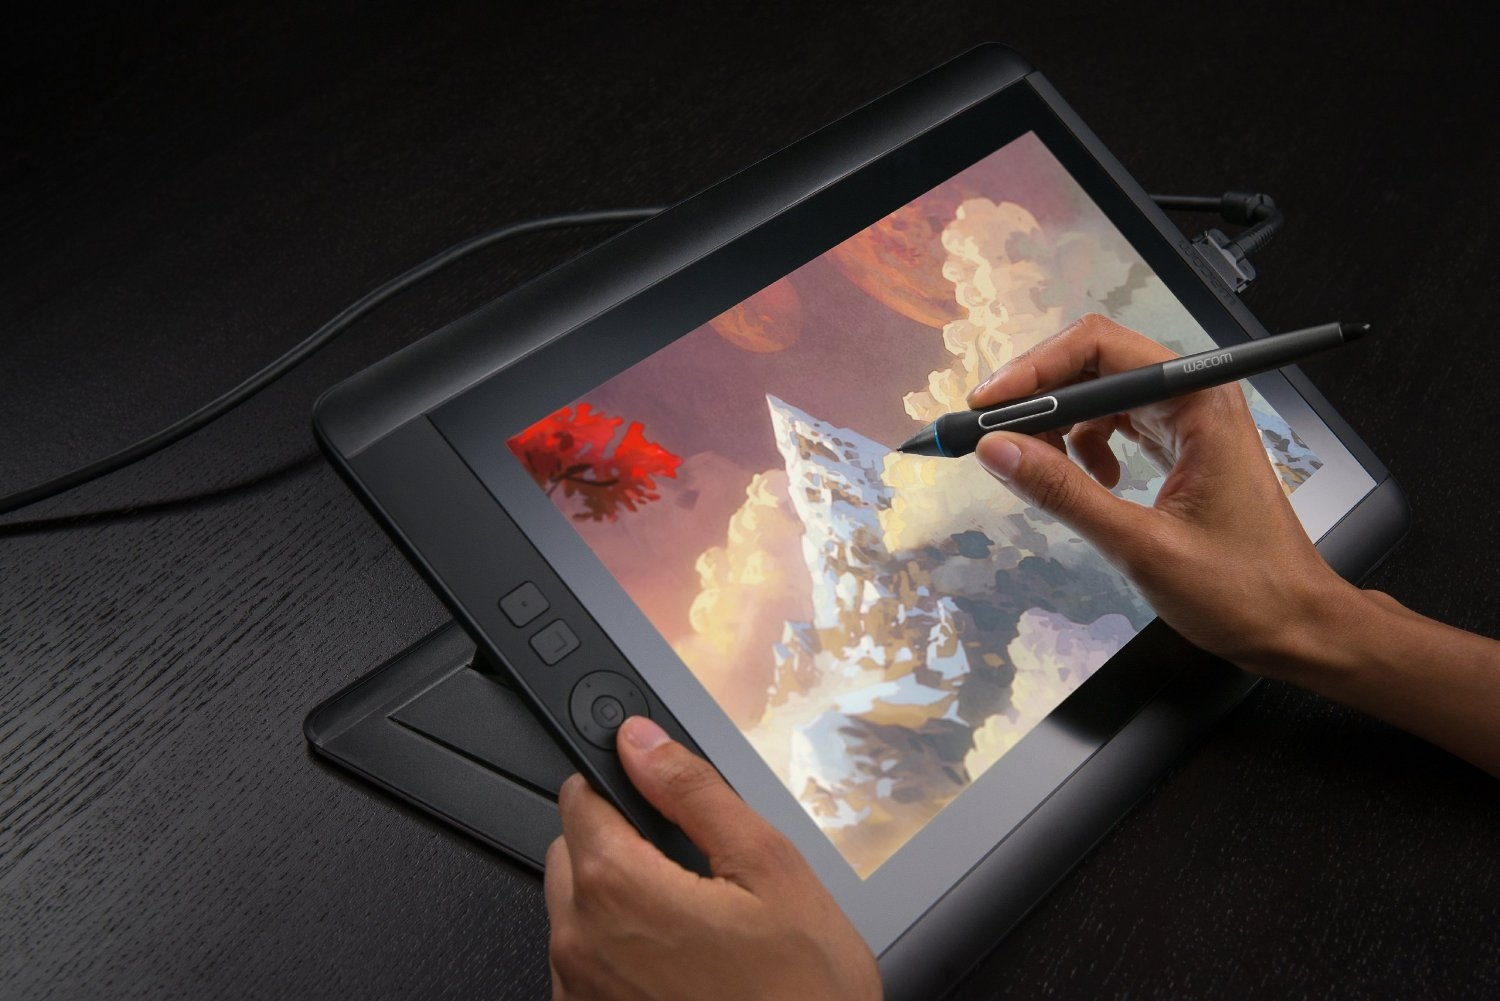 Grafische tablet